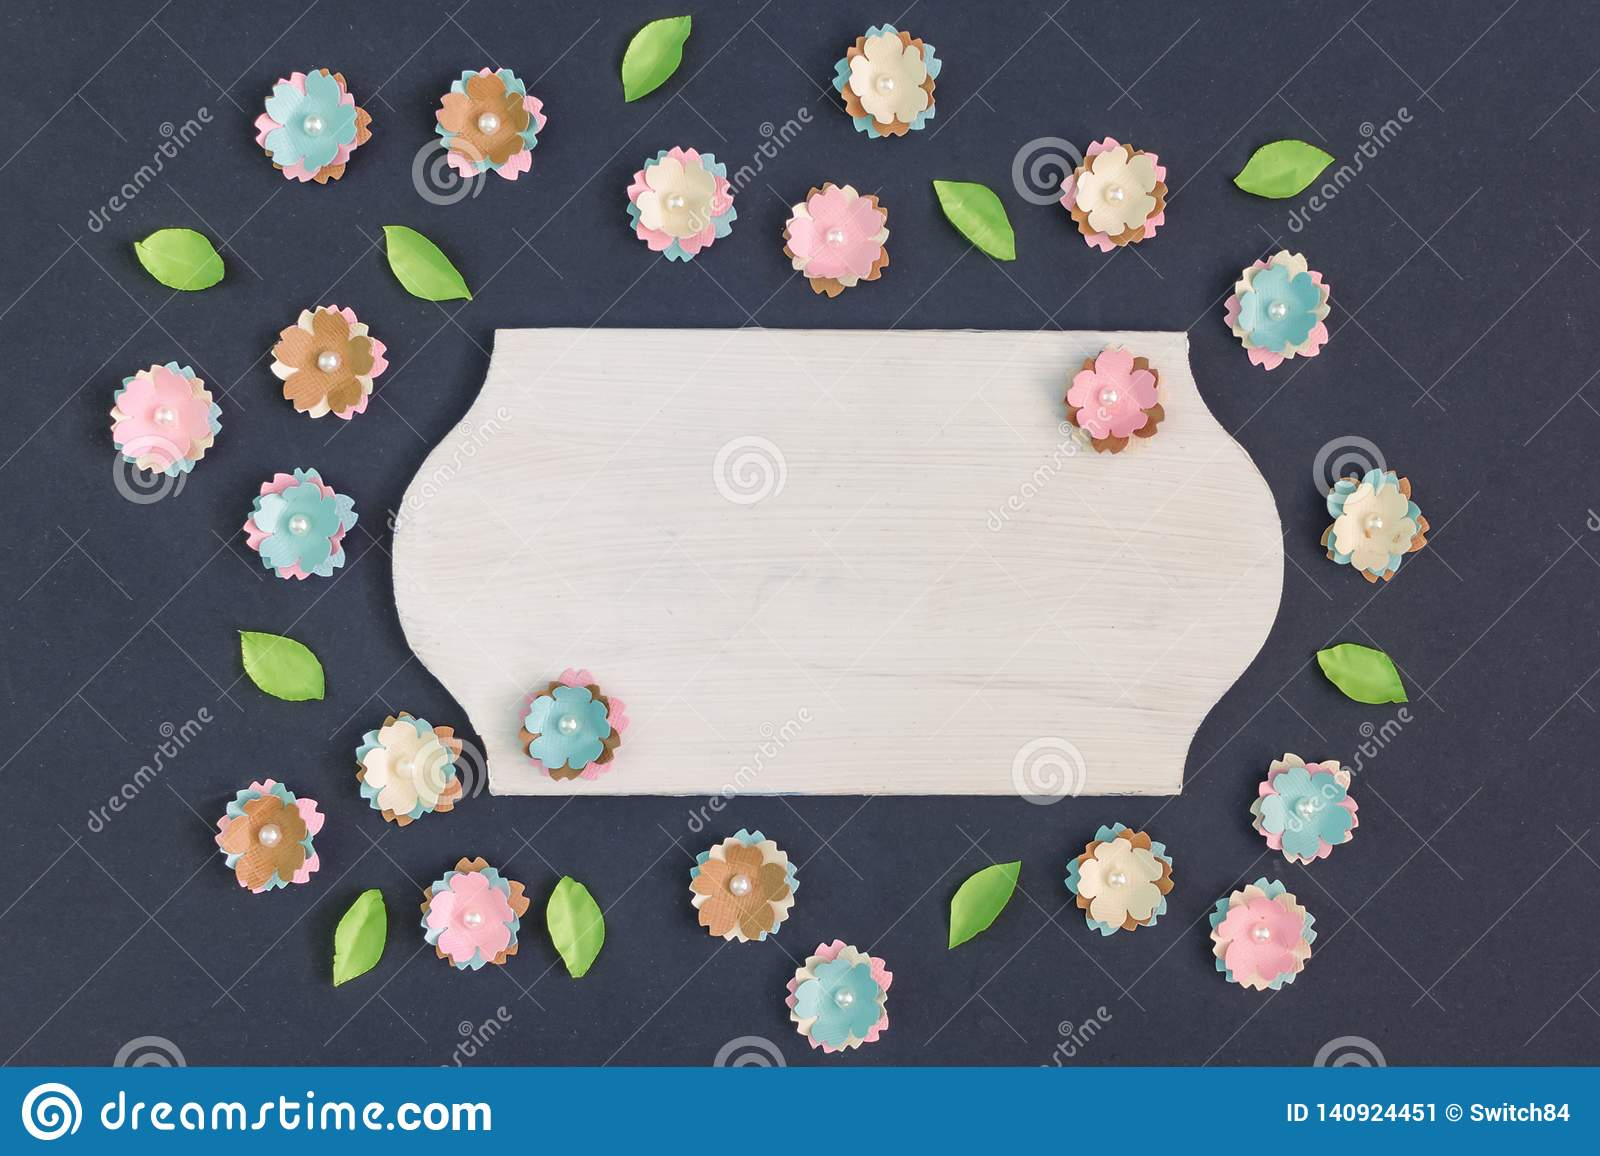 In the center of the black background is an empty plate. Around chaotically lie small artificial paper flowers.